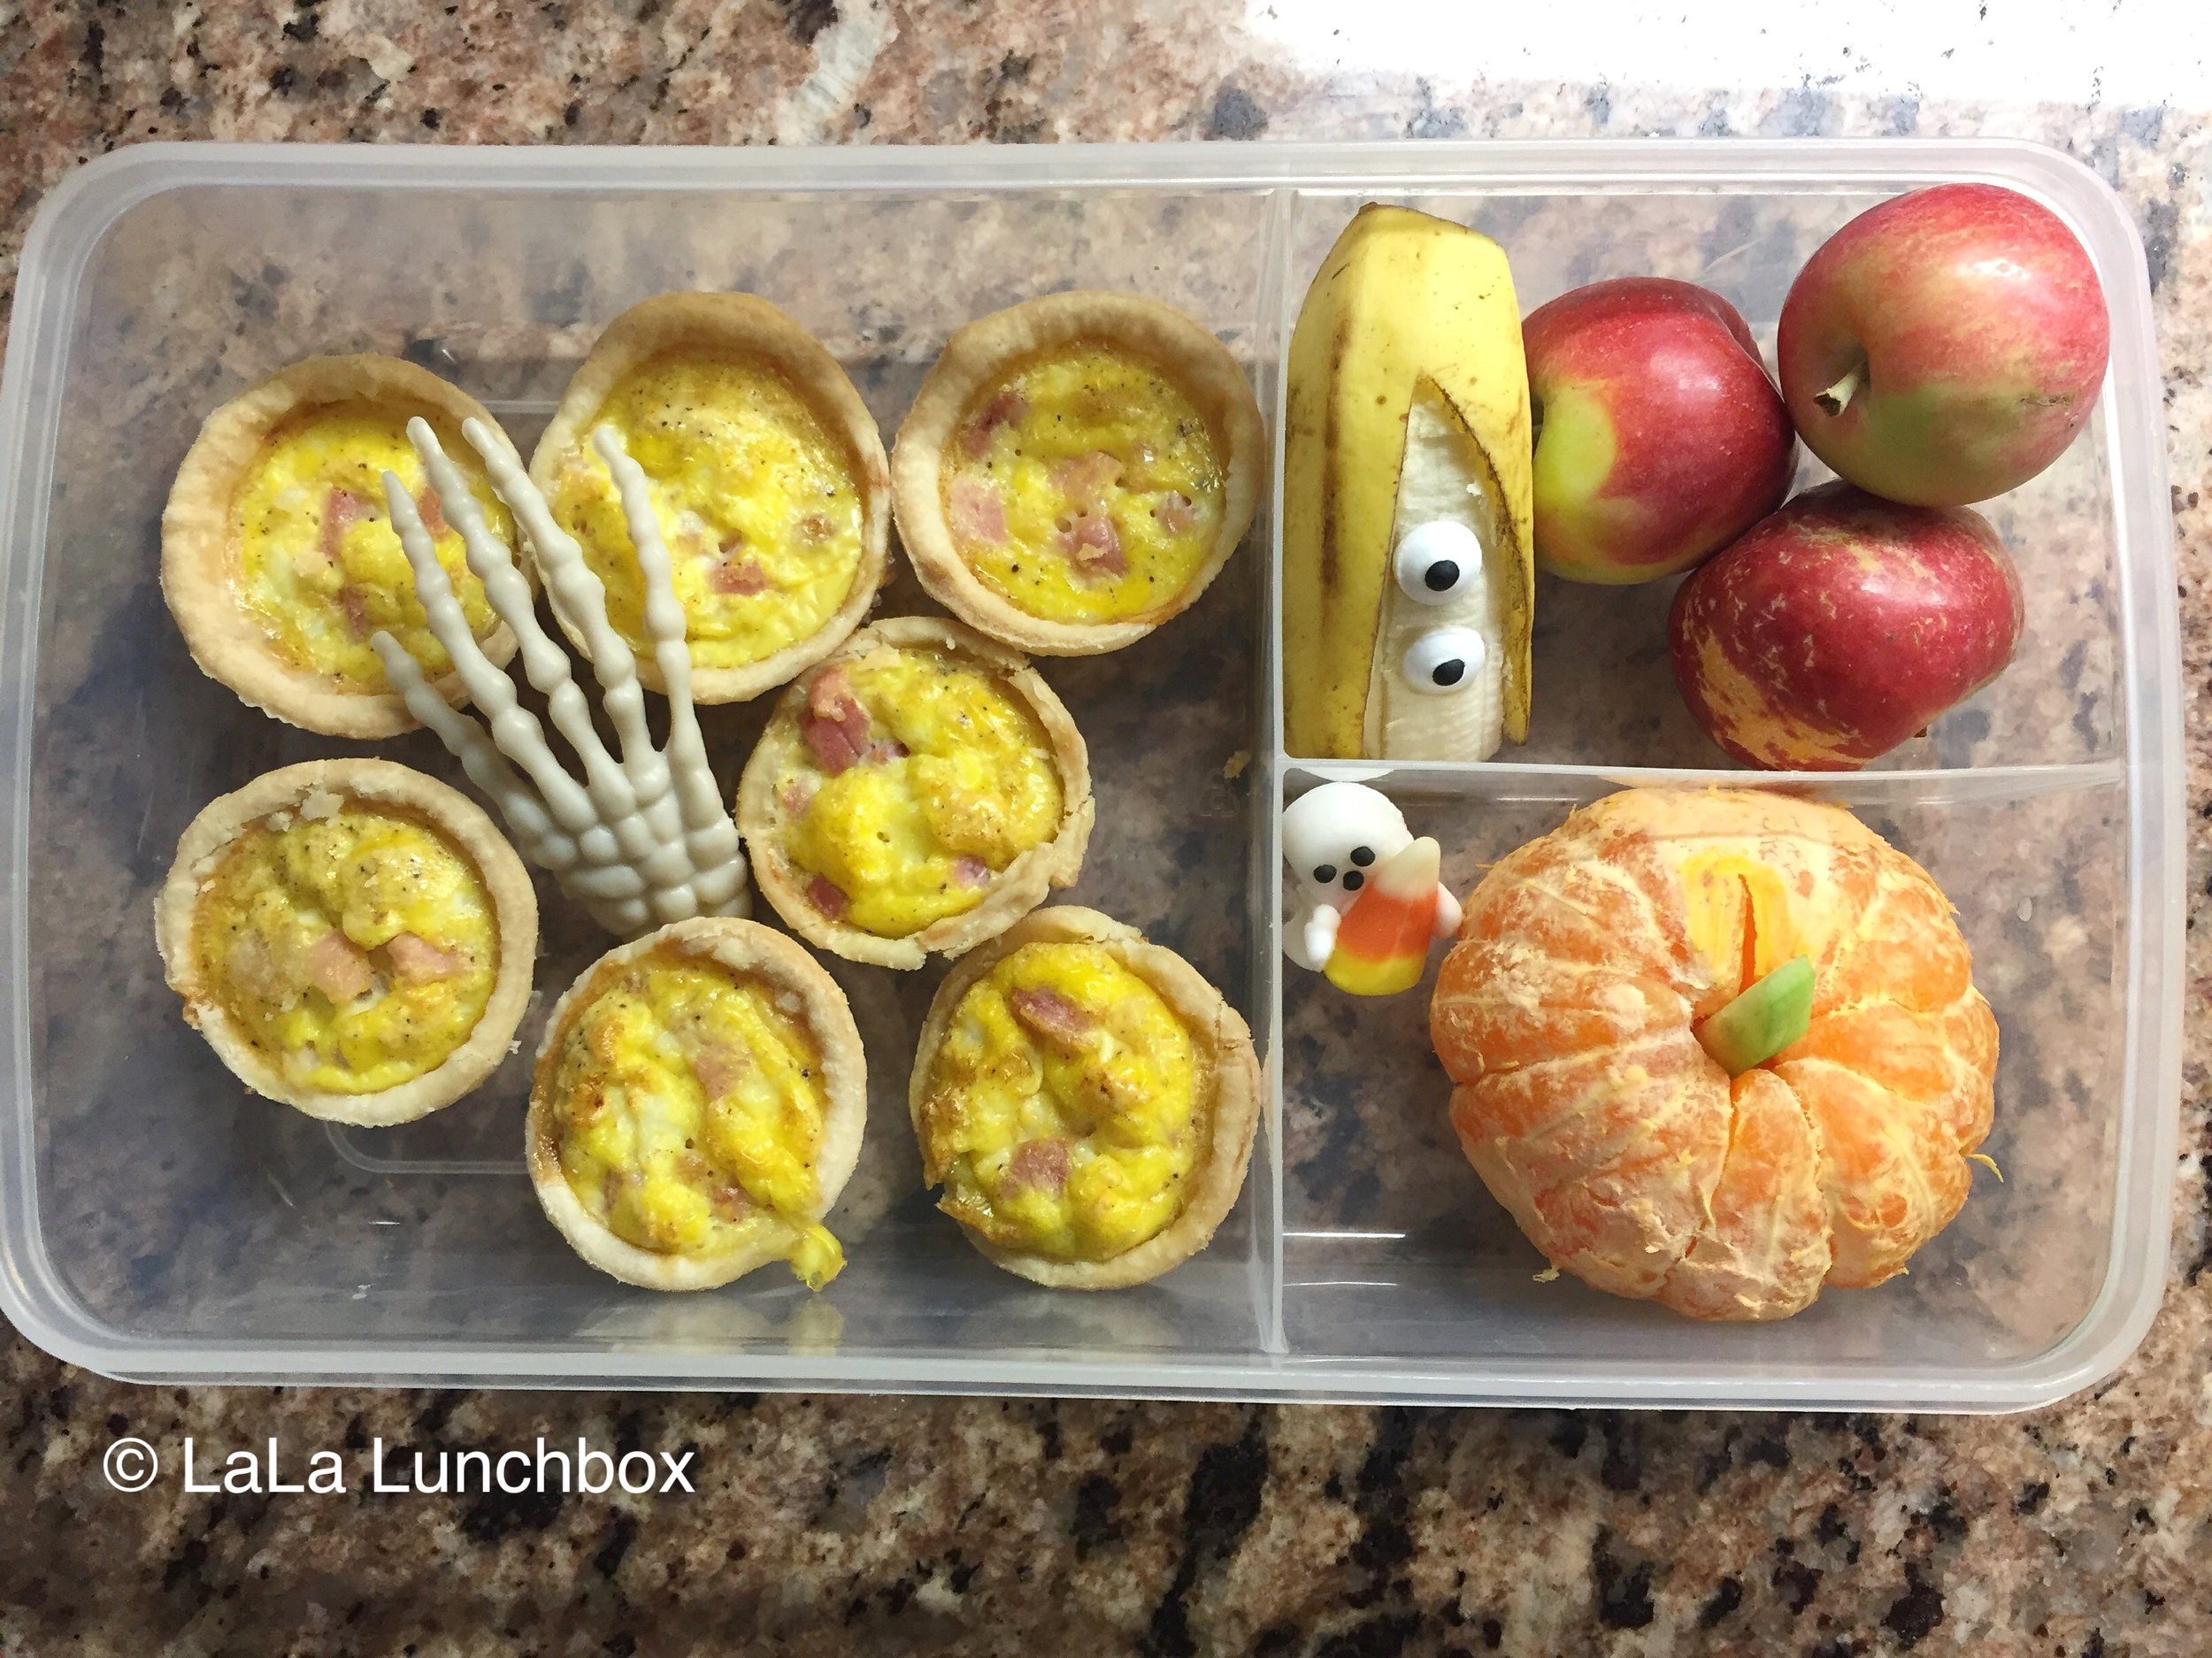 Mini quiche, clementine pumpkins, banana ghost and some mini apples.